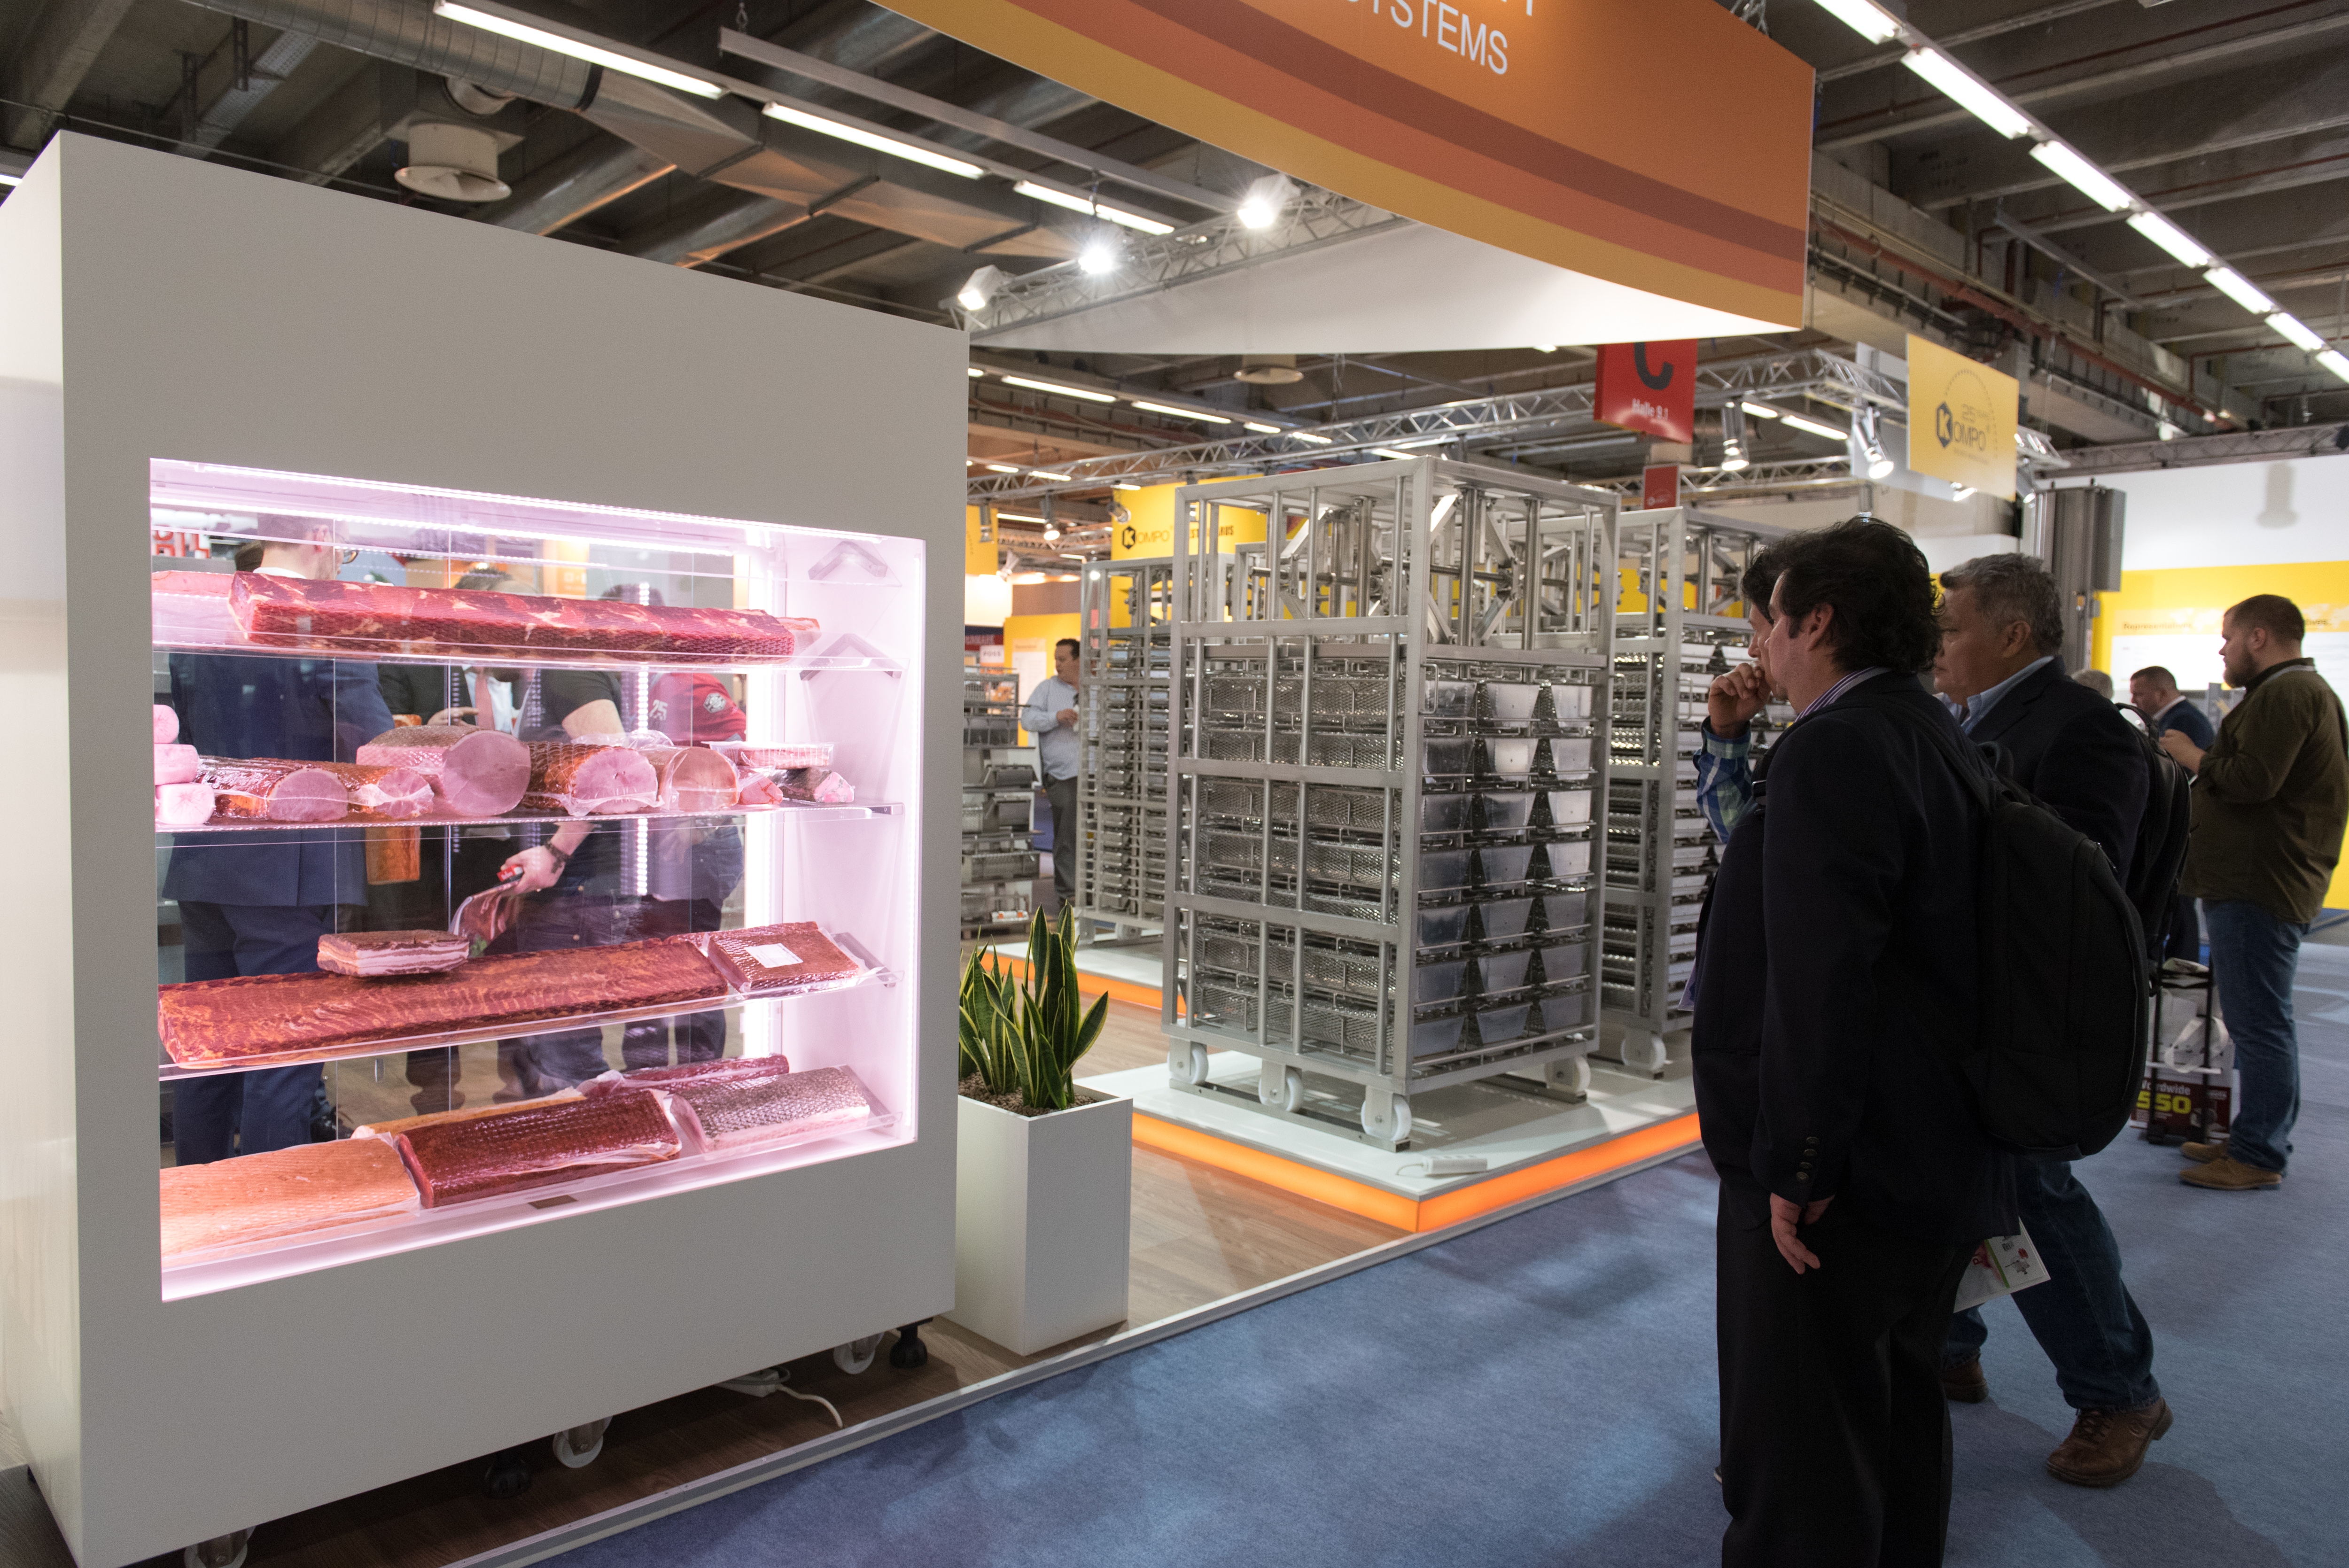 Refrigeration technology at IFFA